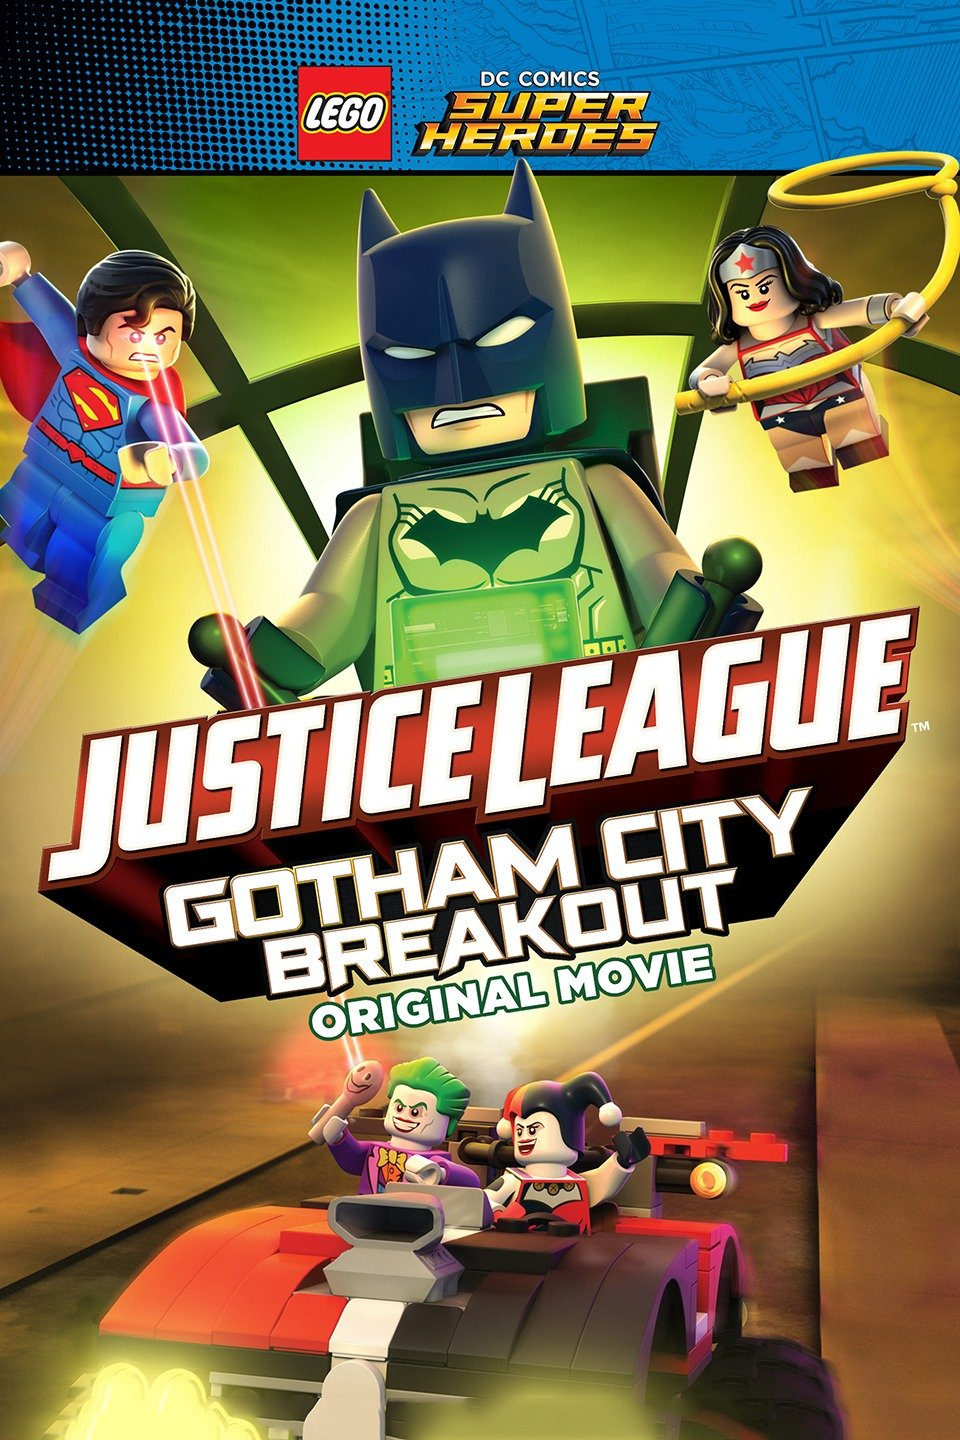 Lego DC Comics Superheroes: Justice League - Gotham City Breakout-Lego DC Comics Superheroes: Justice League - Gotham City Breakout